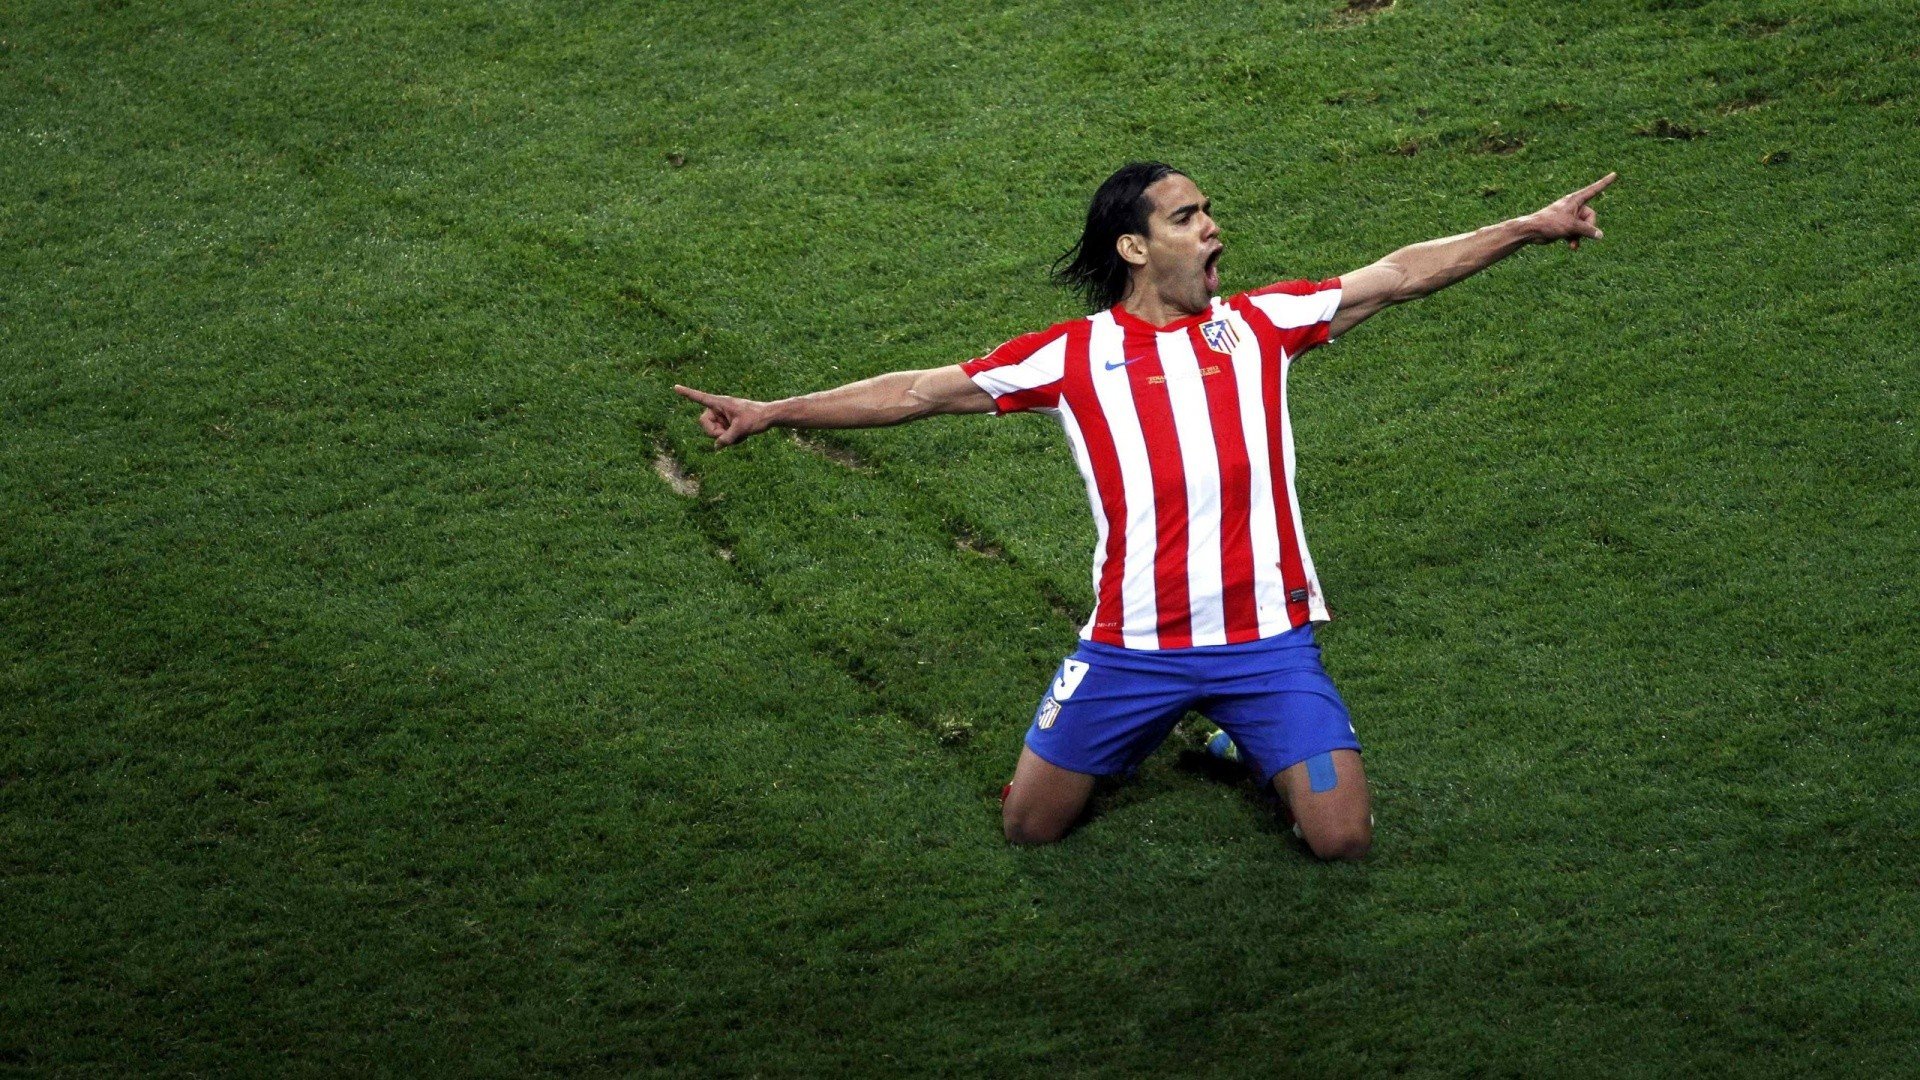 Radamel Falcao Football Players HD Wallpaper of Football 1920x1080